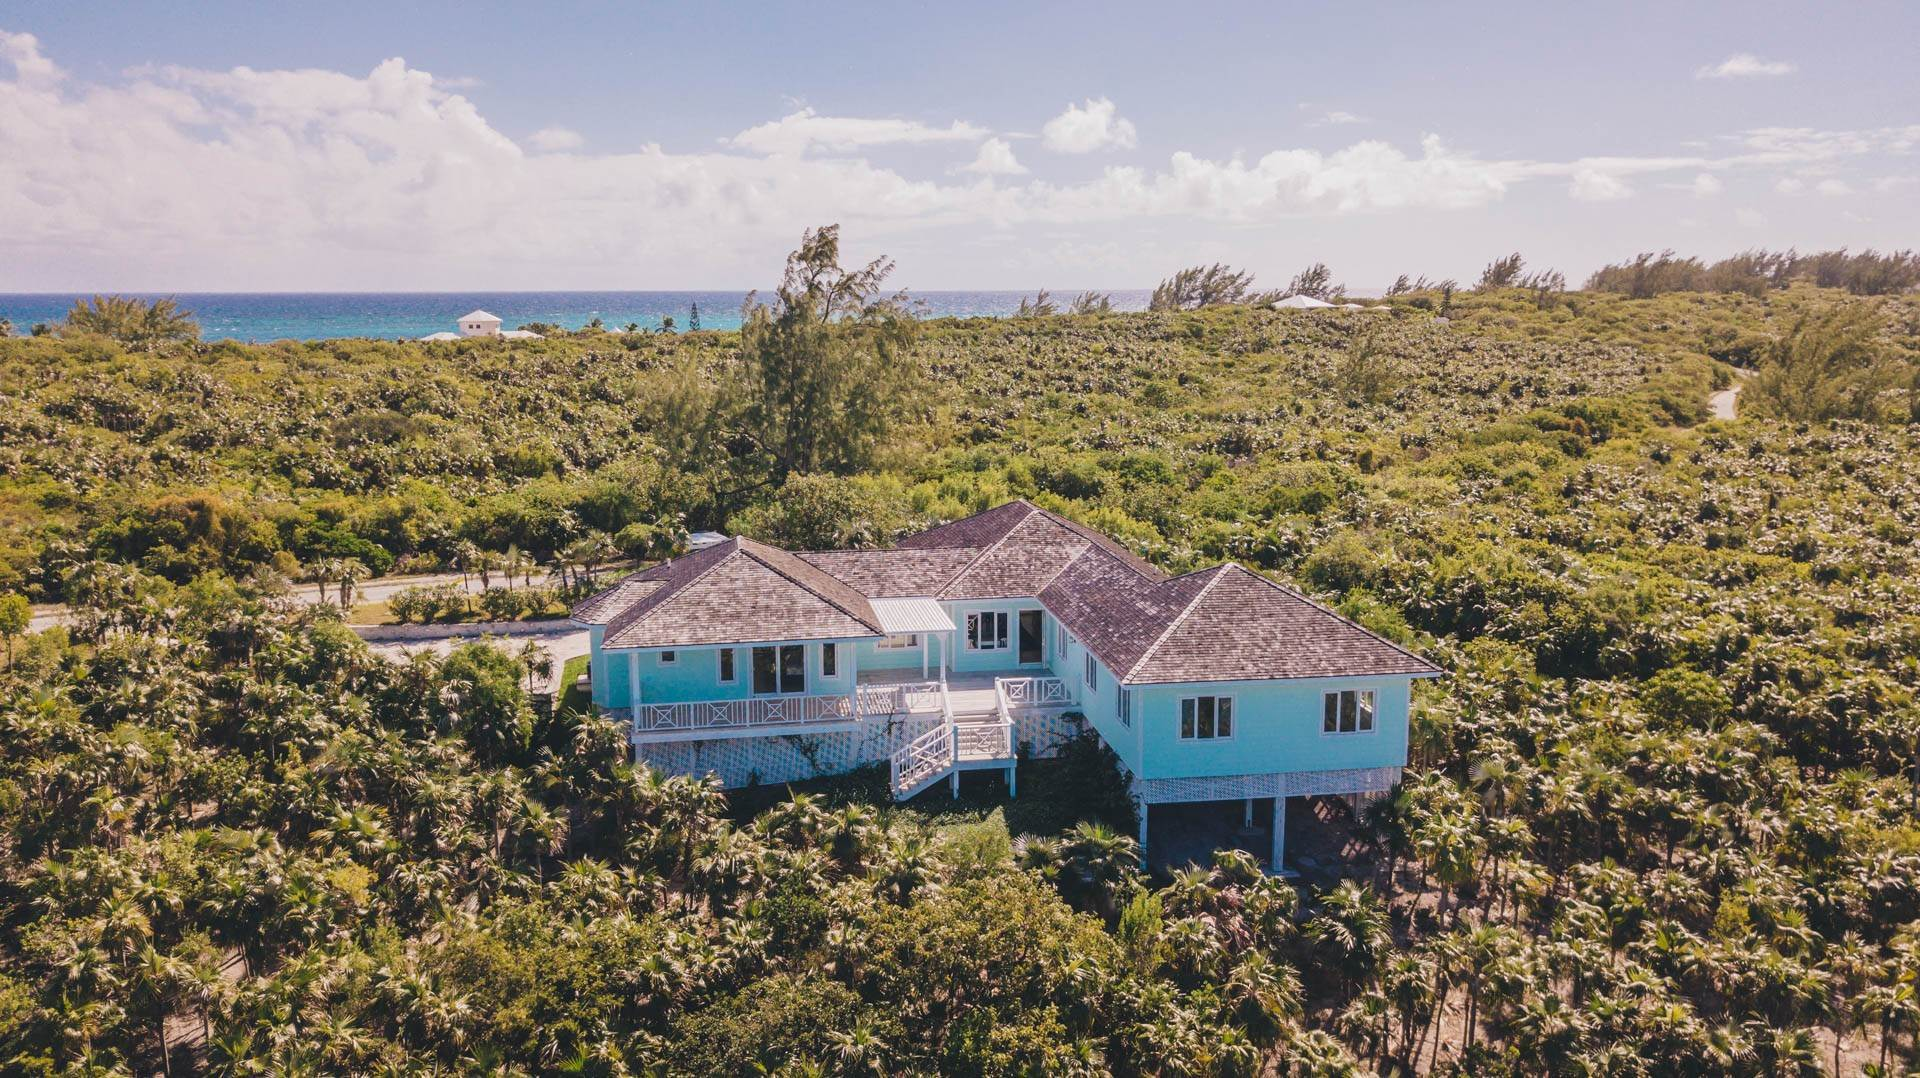 41. Single Family Homes for Sale at Savannah Sound Home - Windermere Island - MLS 44478 Windermere Island, Eleuthera, Bahamas